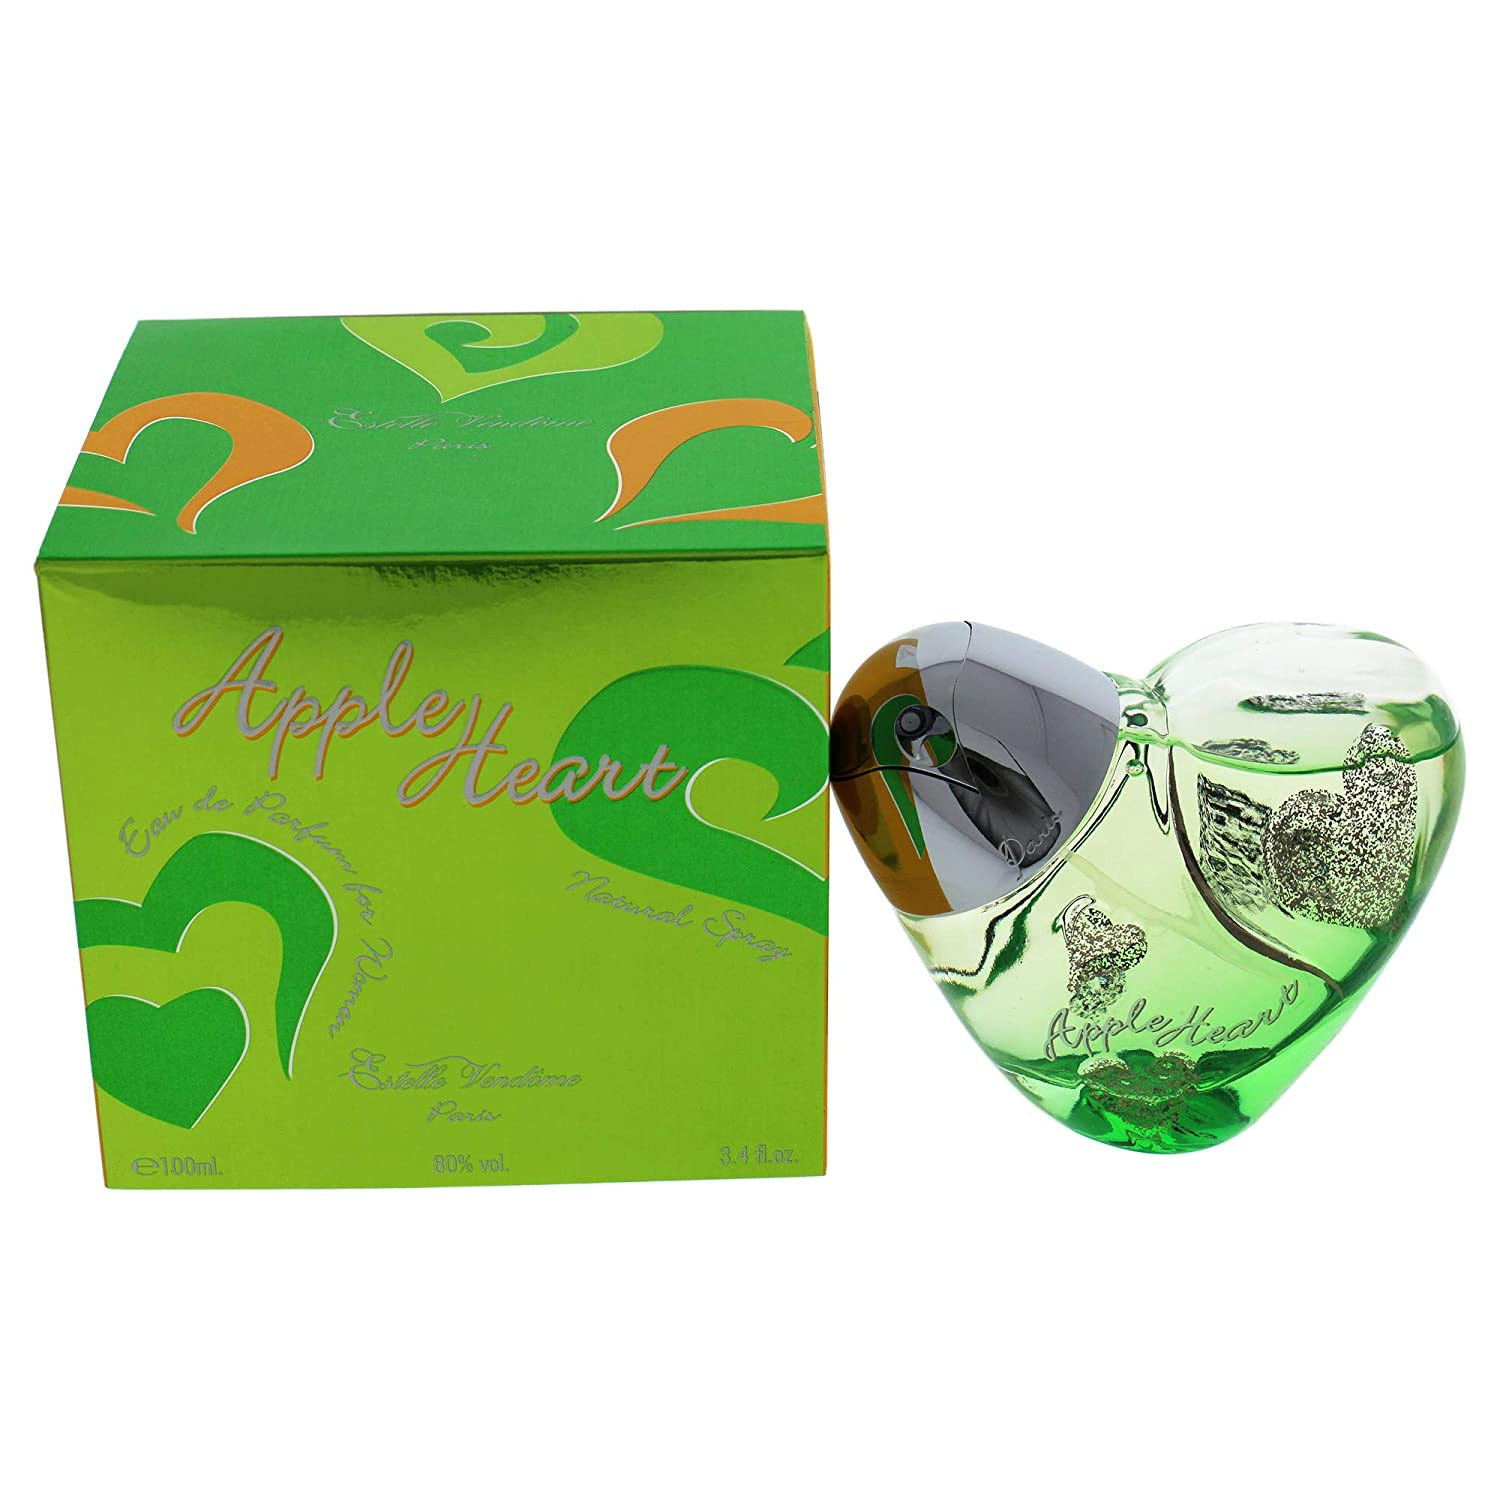 Apple Heart 3.4 oz. Eau De Parfum Spray for Women by Estelle Vendome